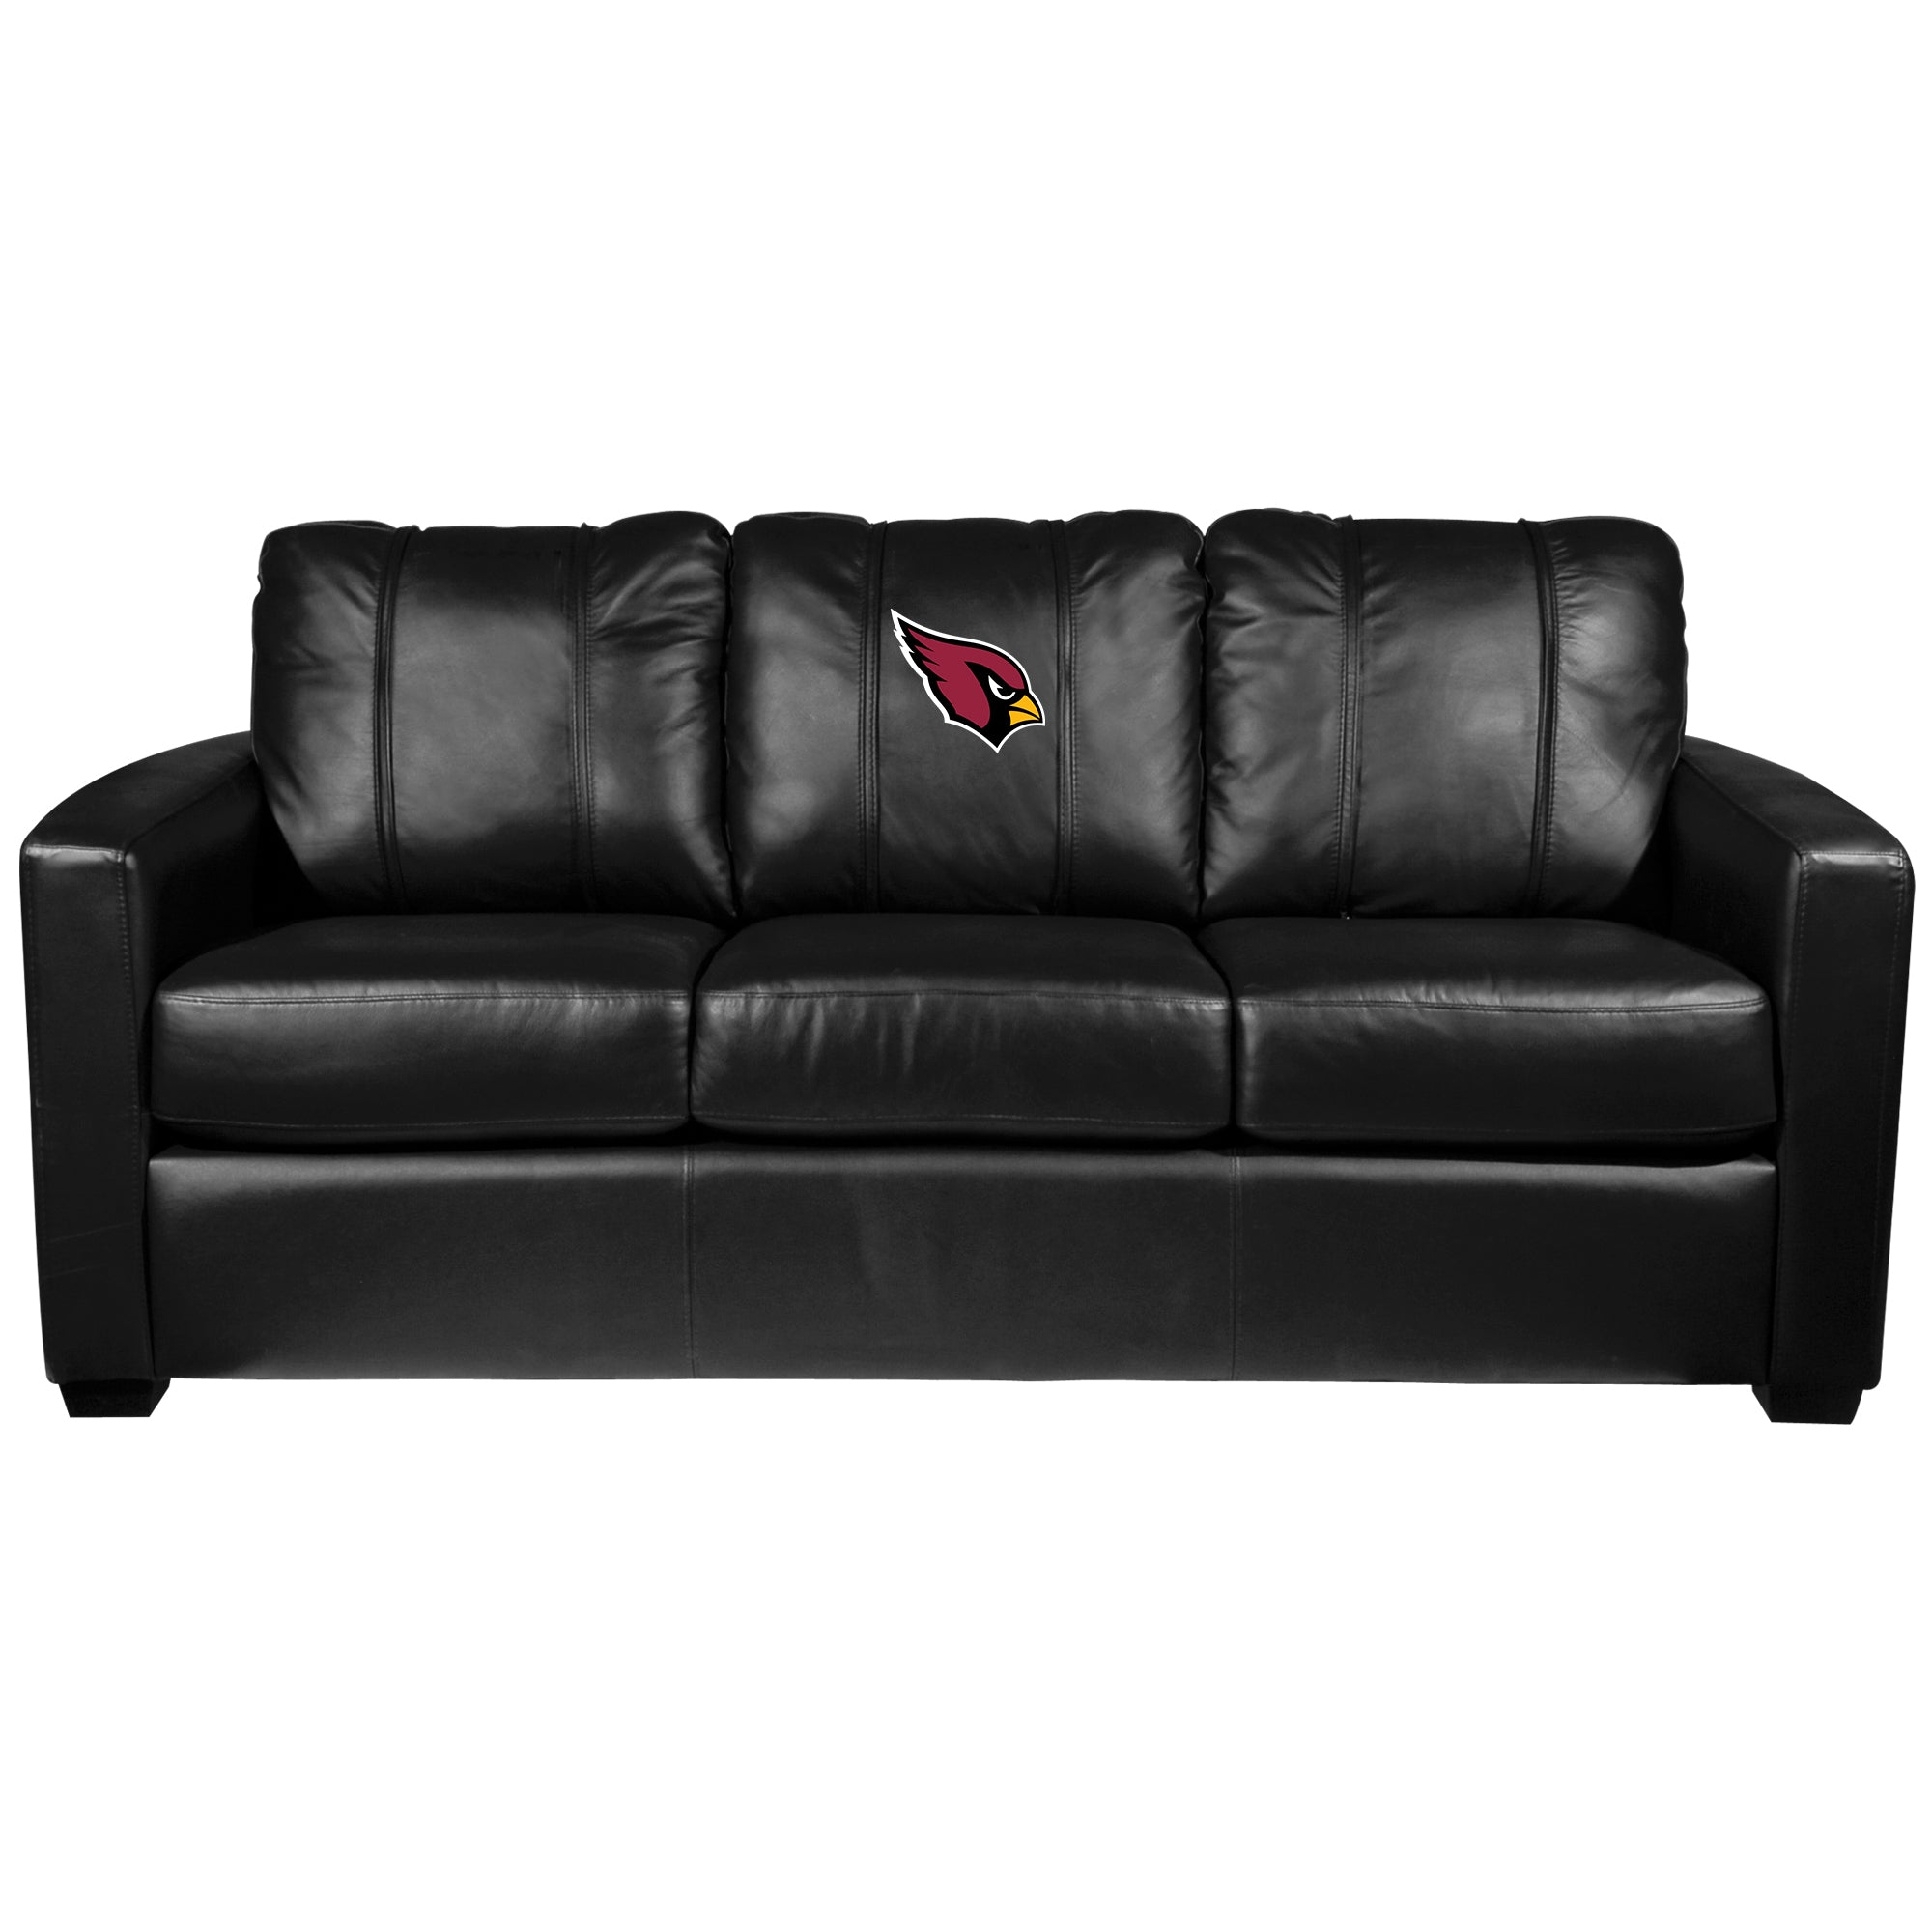 Silver Sofa with Arizona Cardinals Primary Logo